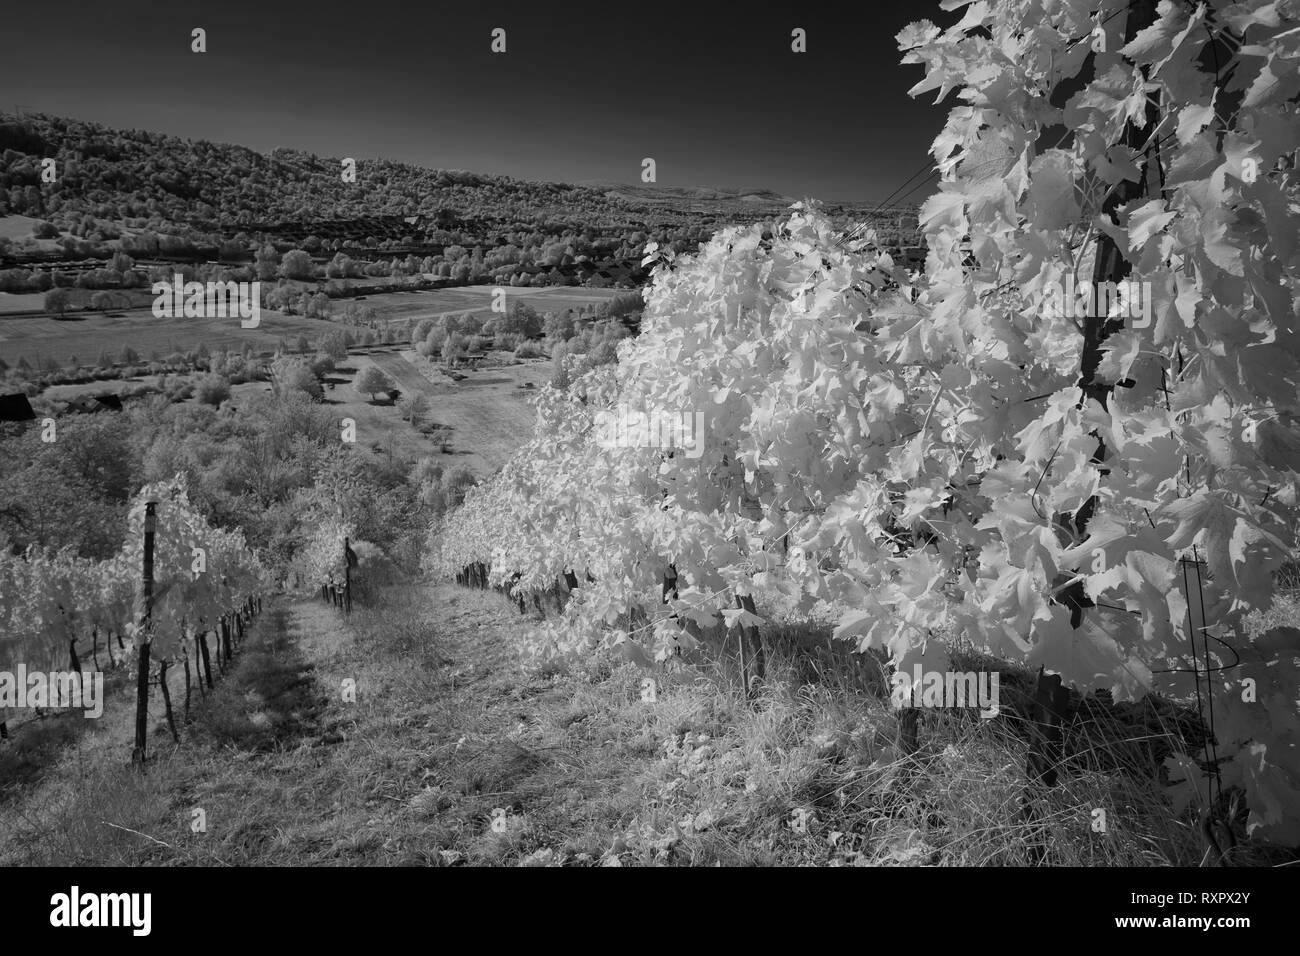 Vineyard vines in a infrared black and white landscape photography